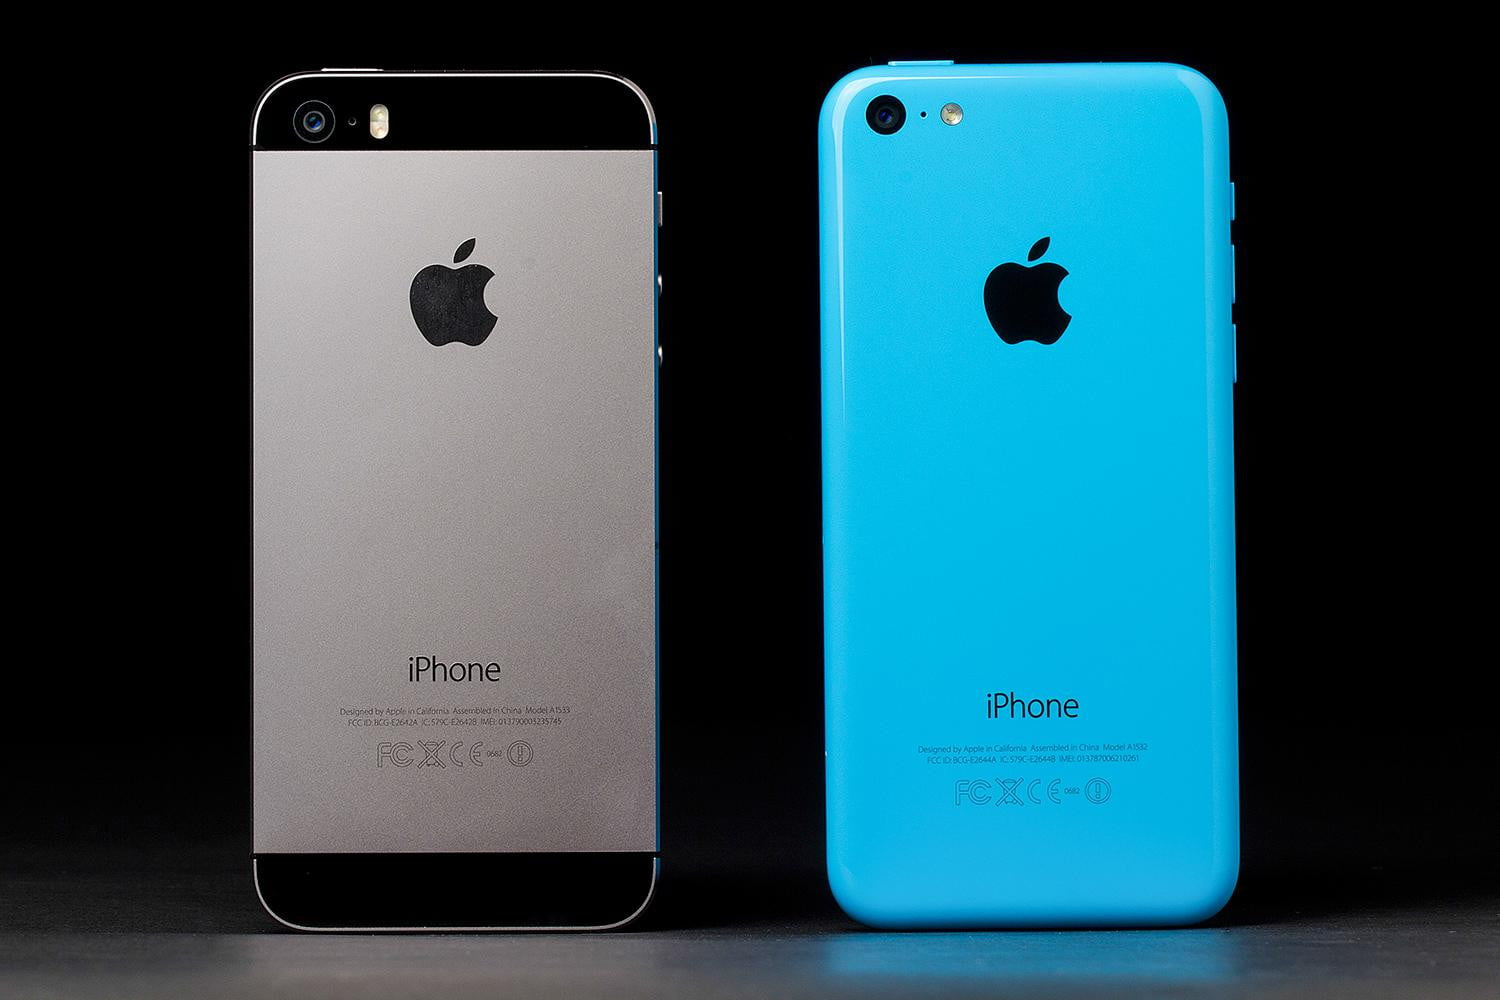 apple-iphone-5c-vs-5s-rear-2-1500x1000.j